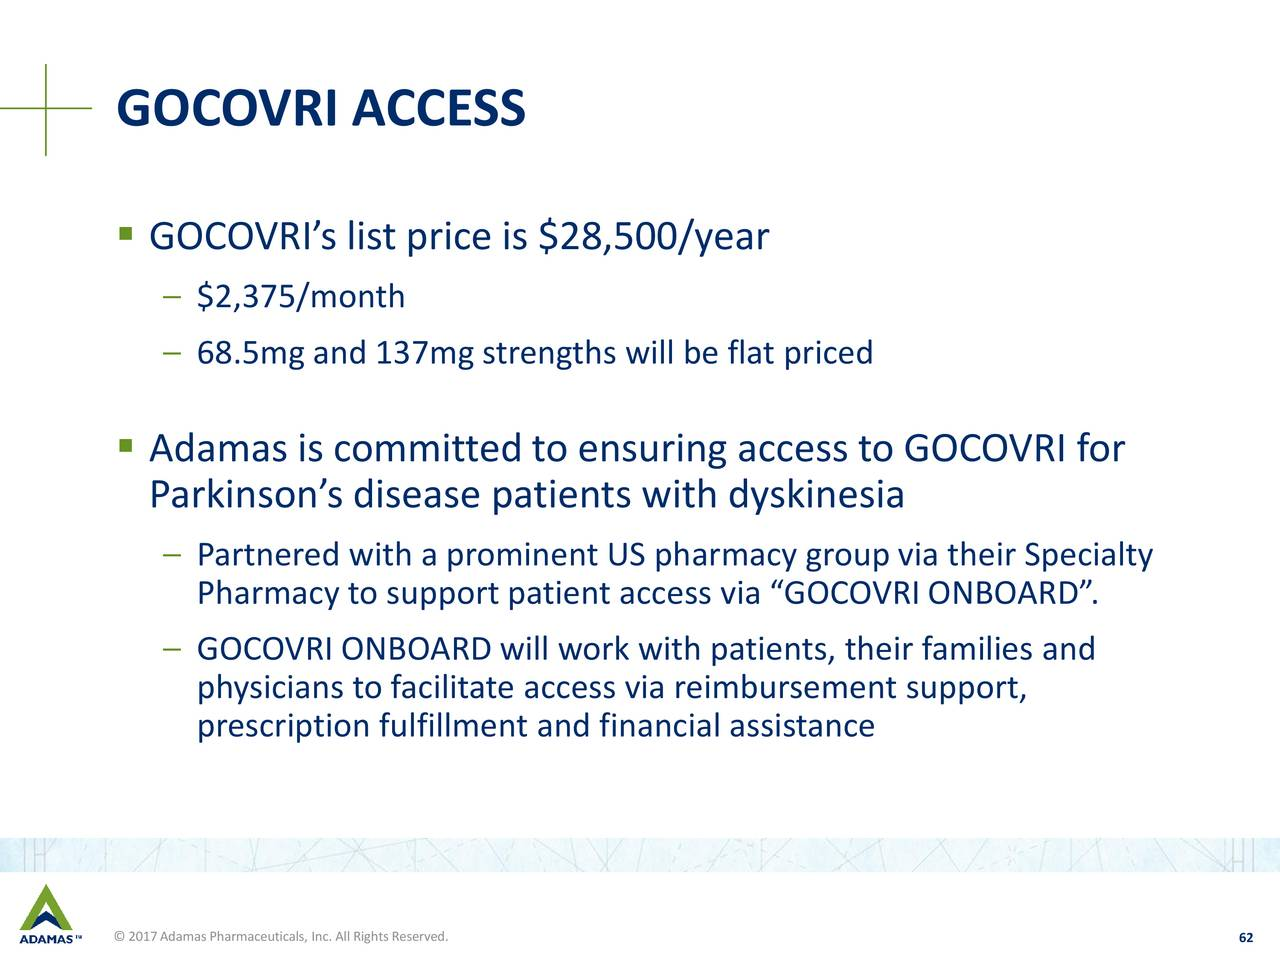 Adamas Pharma (ADMS) Investor Presentation - Slideshow